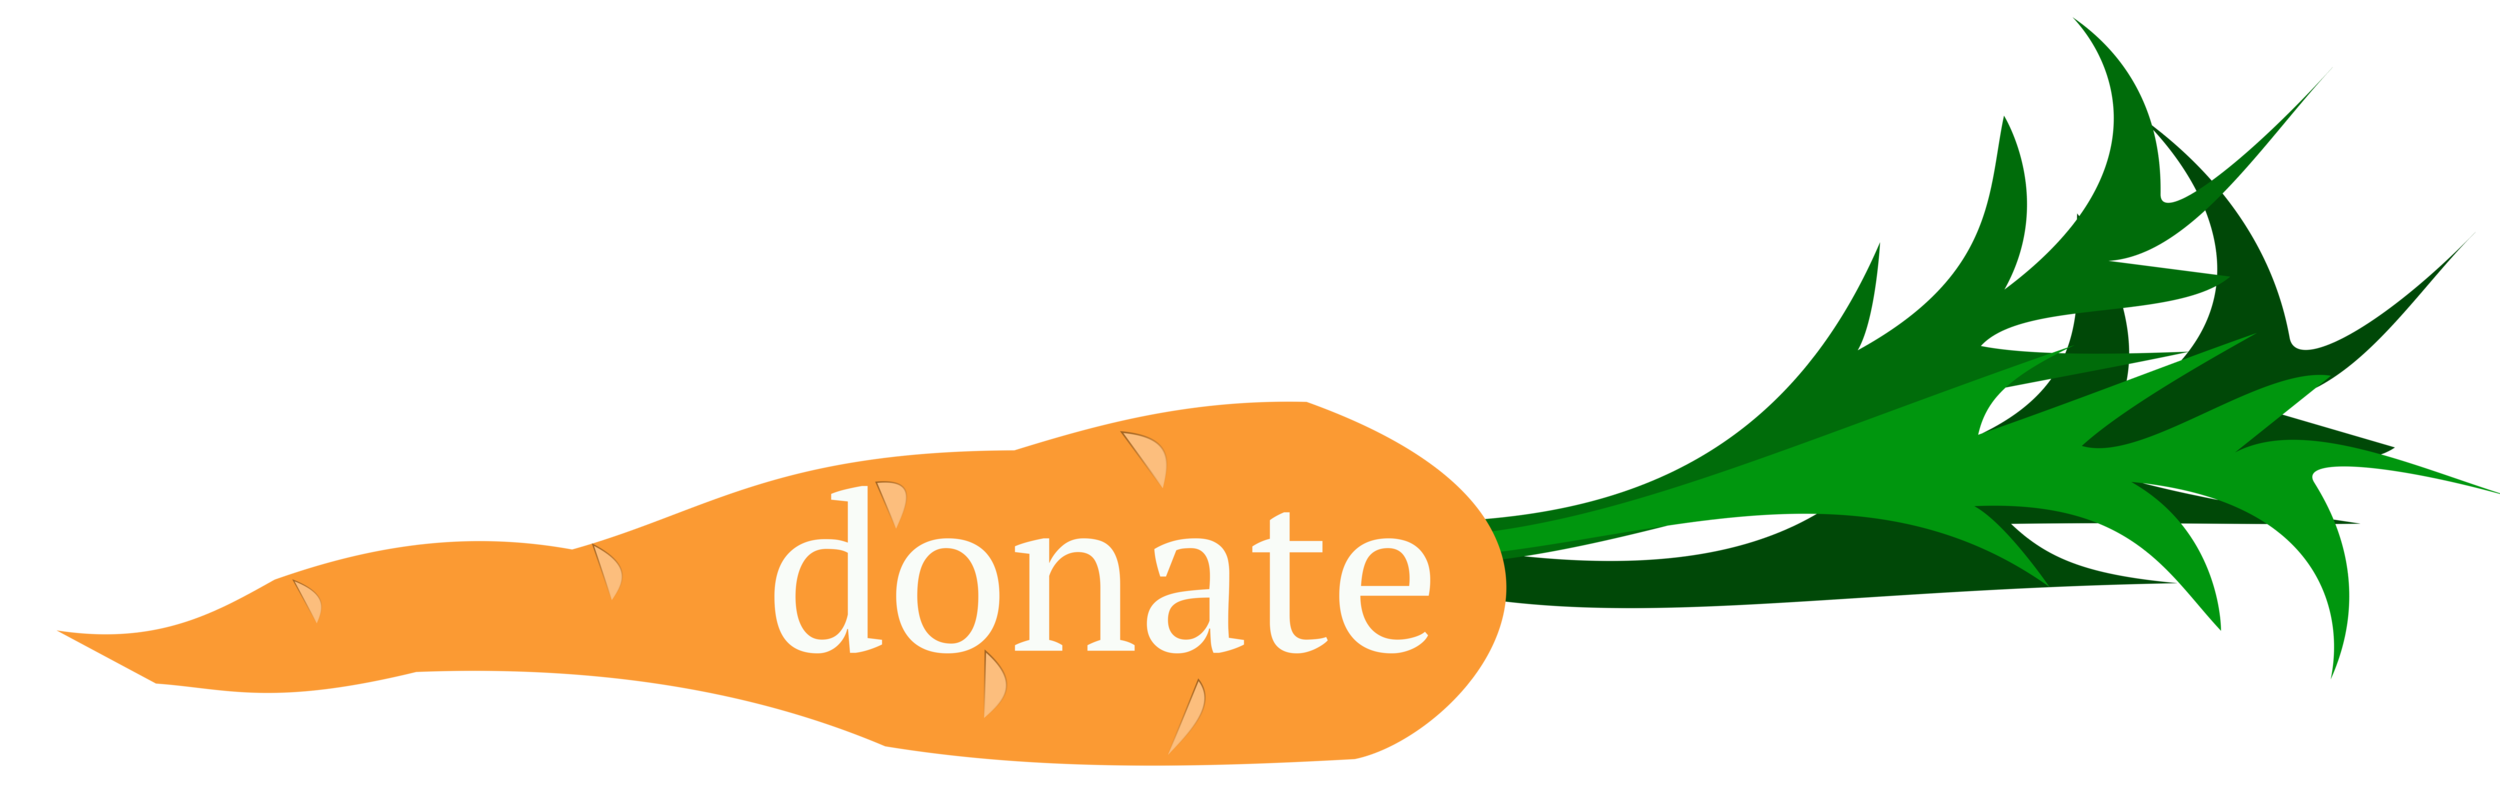 carrot clipart donate.png